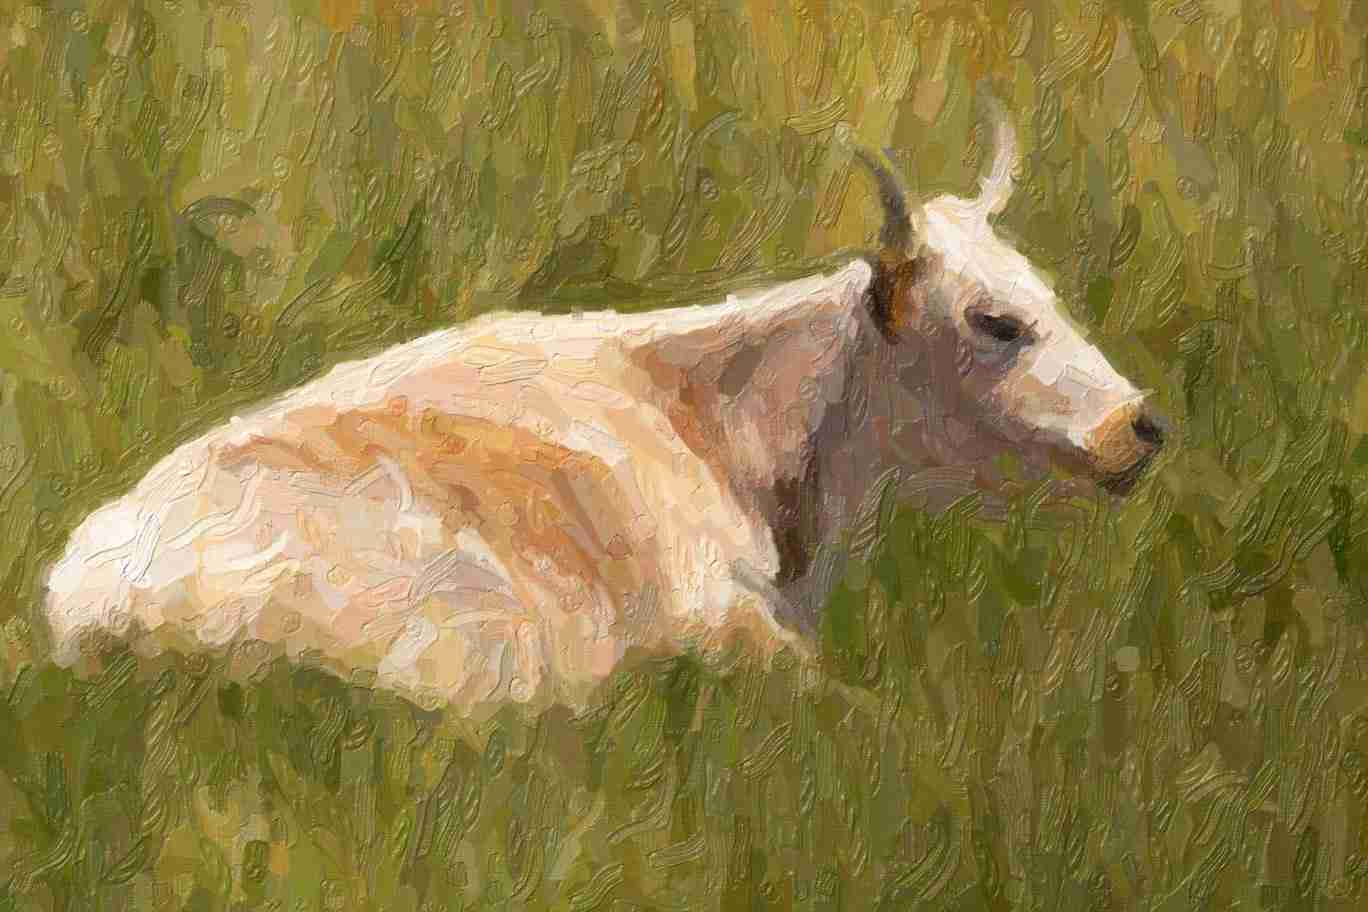 Print of a Cow Laying in the Grass